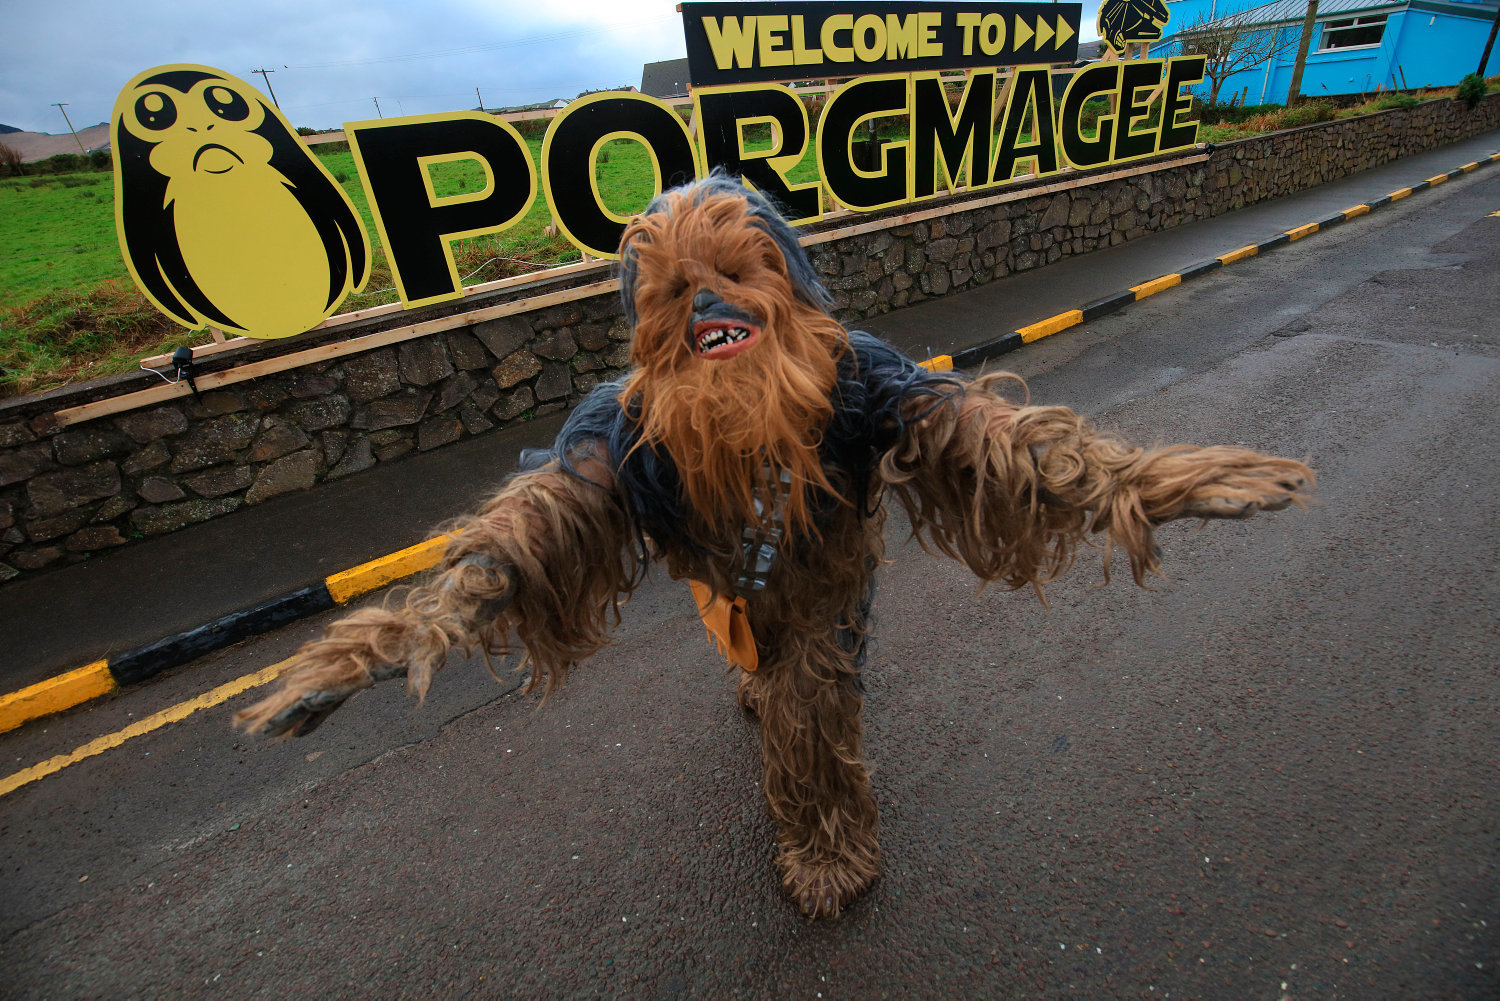 STAR WARS & THE WILD ATLANTIC WAY - 12 Day Self Drive Tours From $1,699.00 09254